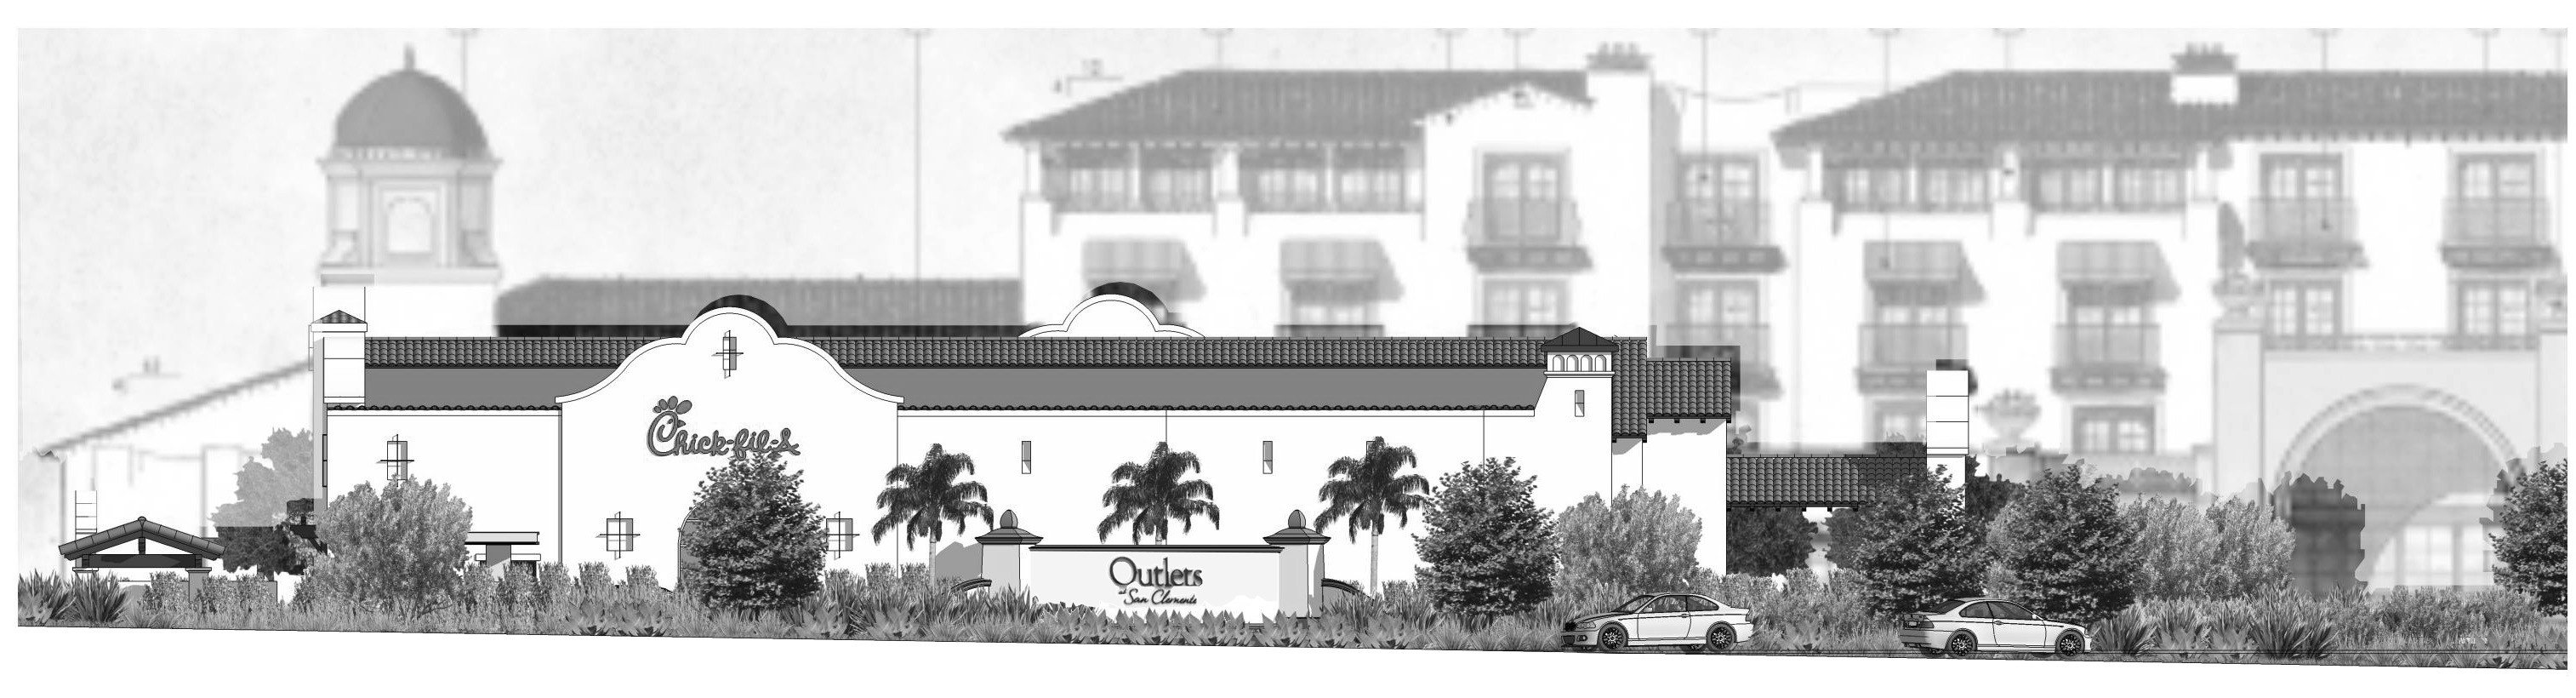 This rendering, presented at a Planning Commission meeting in December, shows a San Clemente Chick-fil-A restaurant, as viewed from the southbound Avenida Vista Hermosa off-ramp. Photo: Courtesy of the city of San Clemente